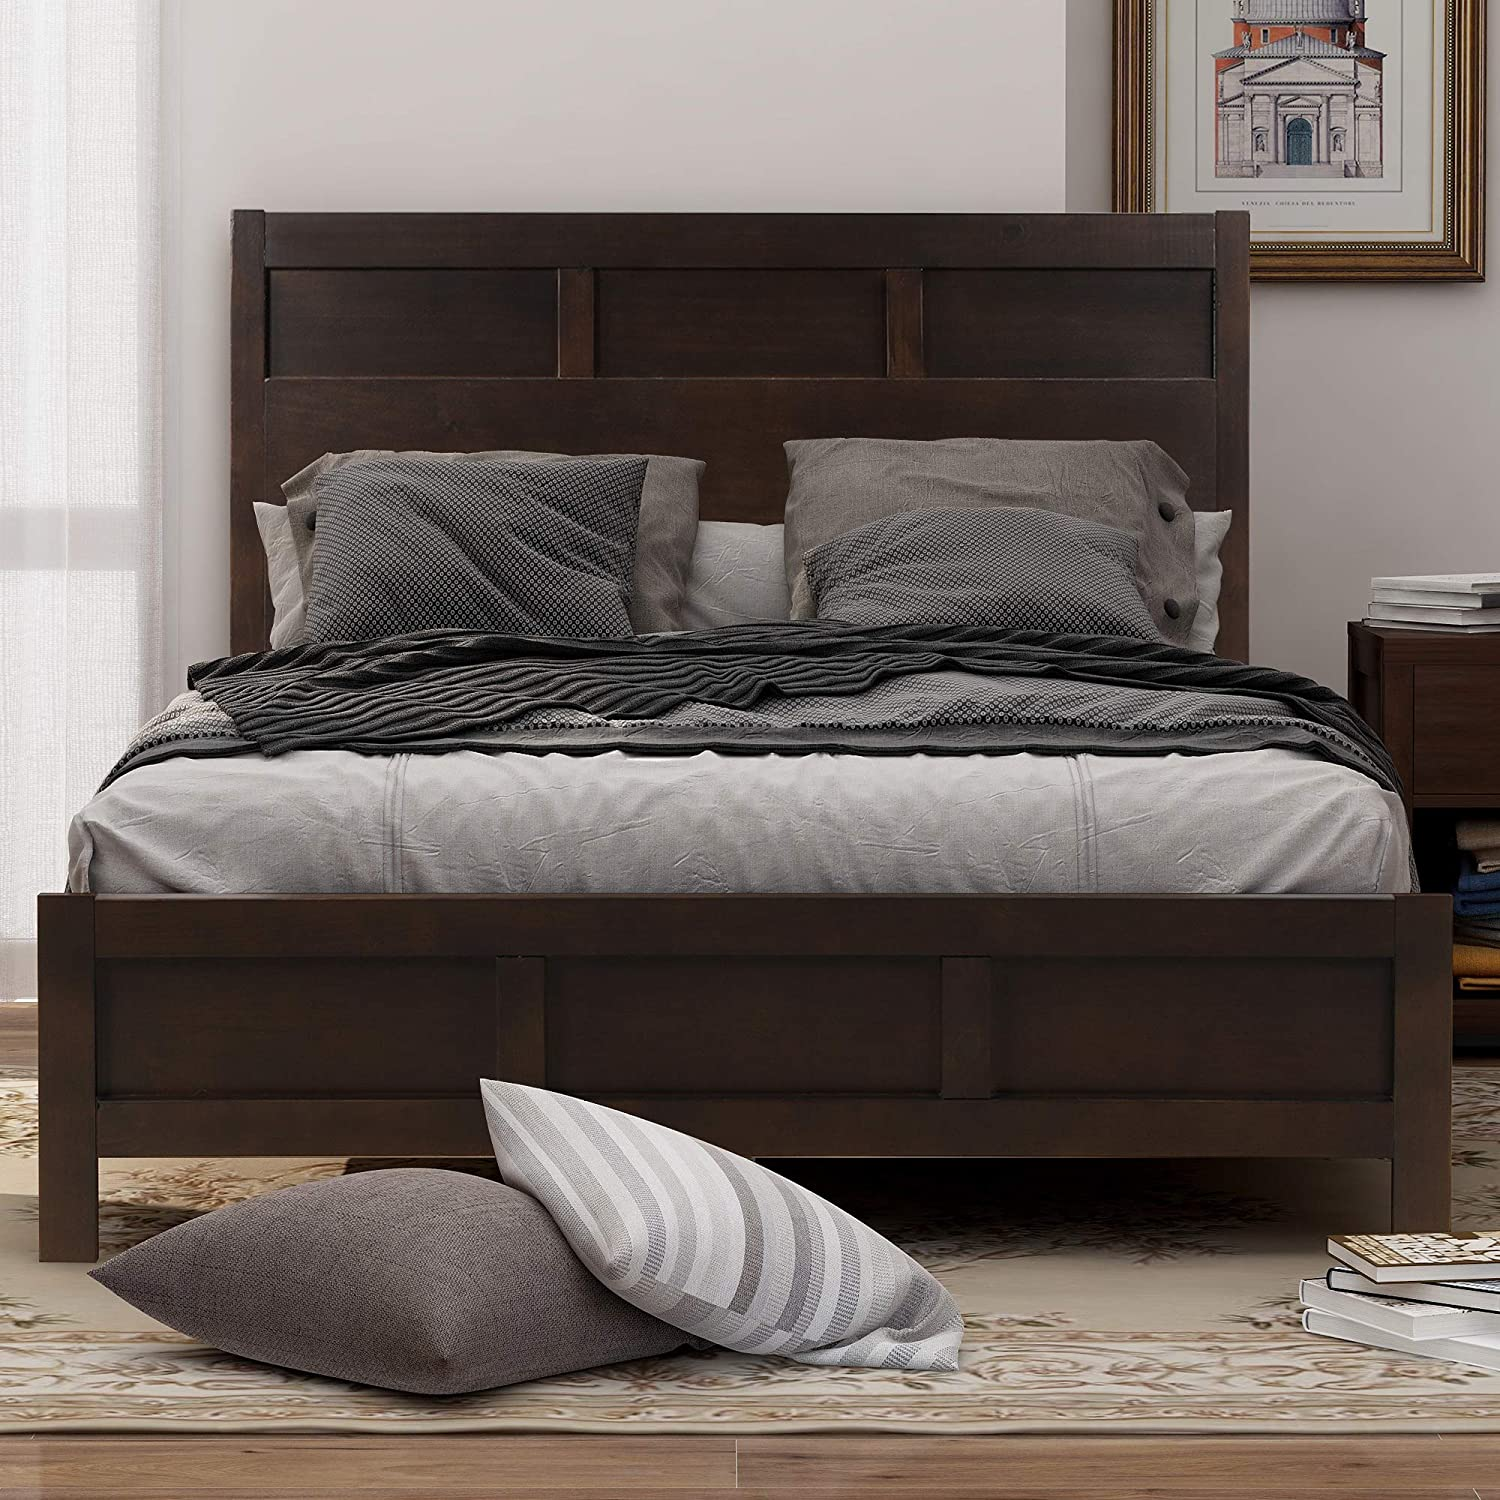 Bedroom Set with Twin Size Platform Bed Merax 6 Pieces Bedroom Furniture Set Chest and Mirror Rich Brown Color Two Nightstands Dresser